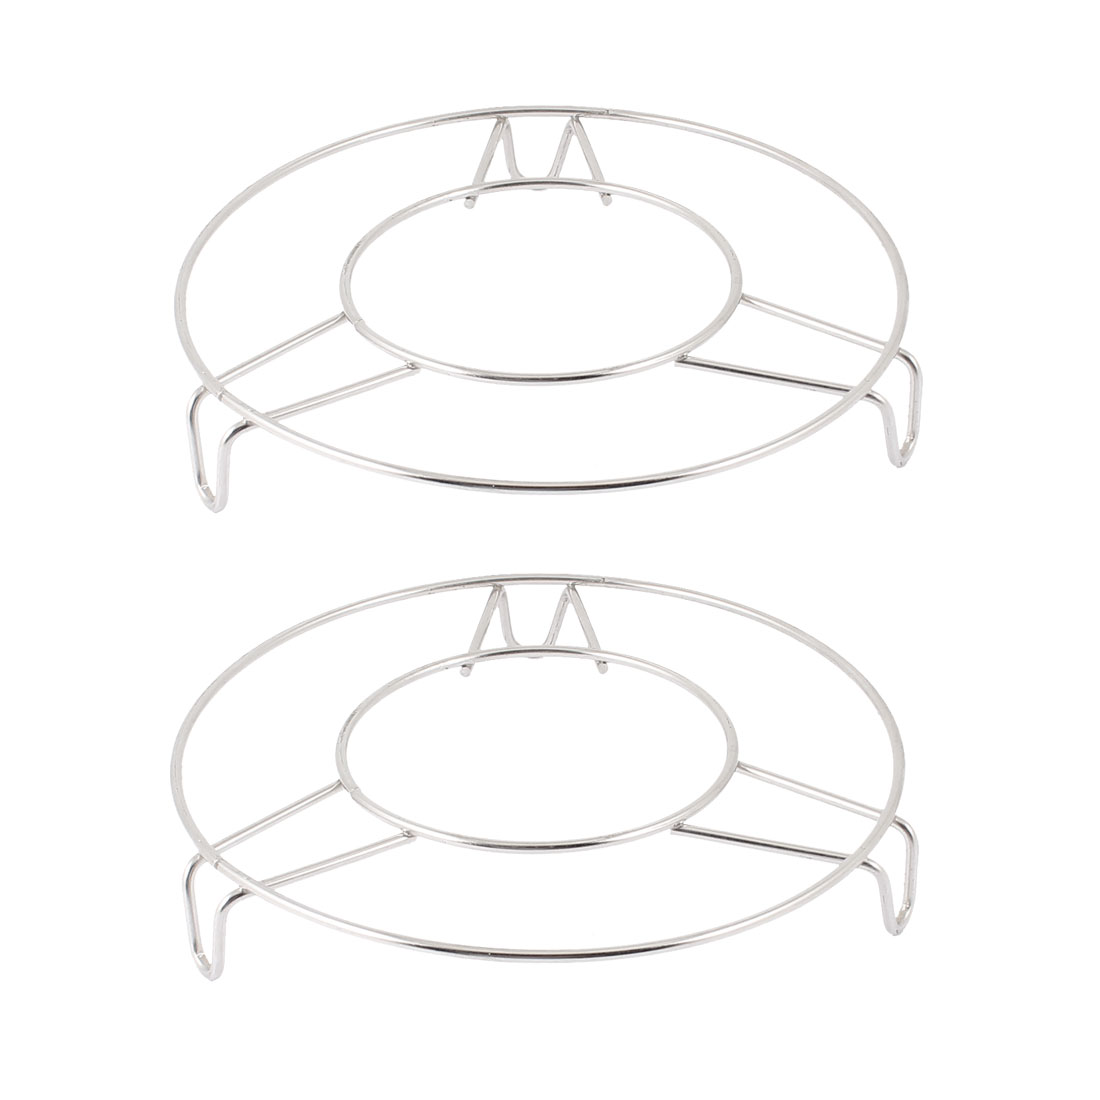 "Home Kitchen Cooking Stainless Steel 6"" Diameter Round Steamer Rack Stand 2 Pcs"